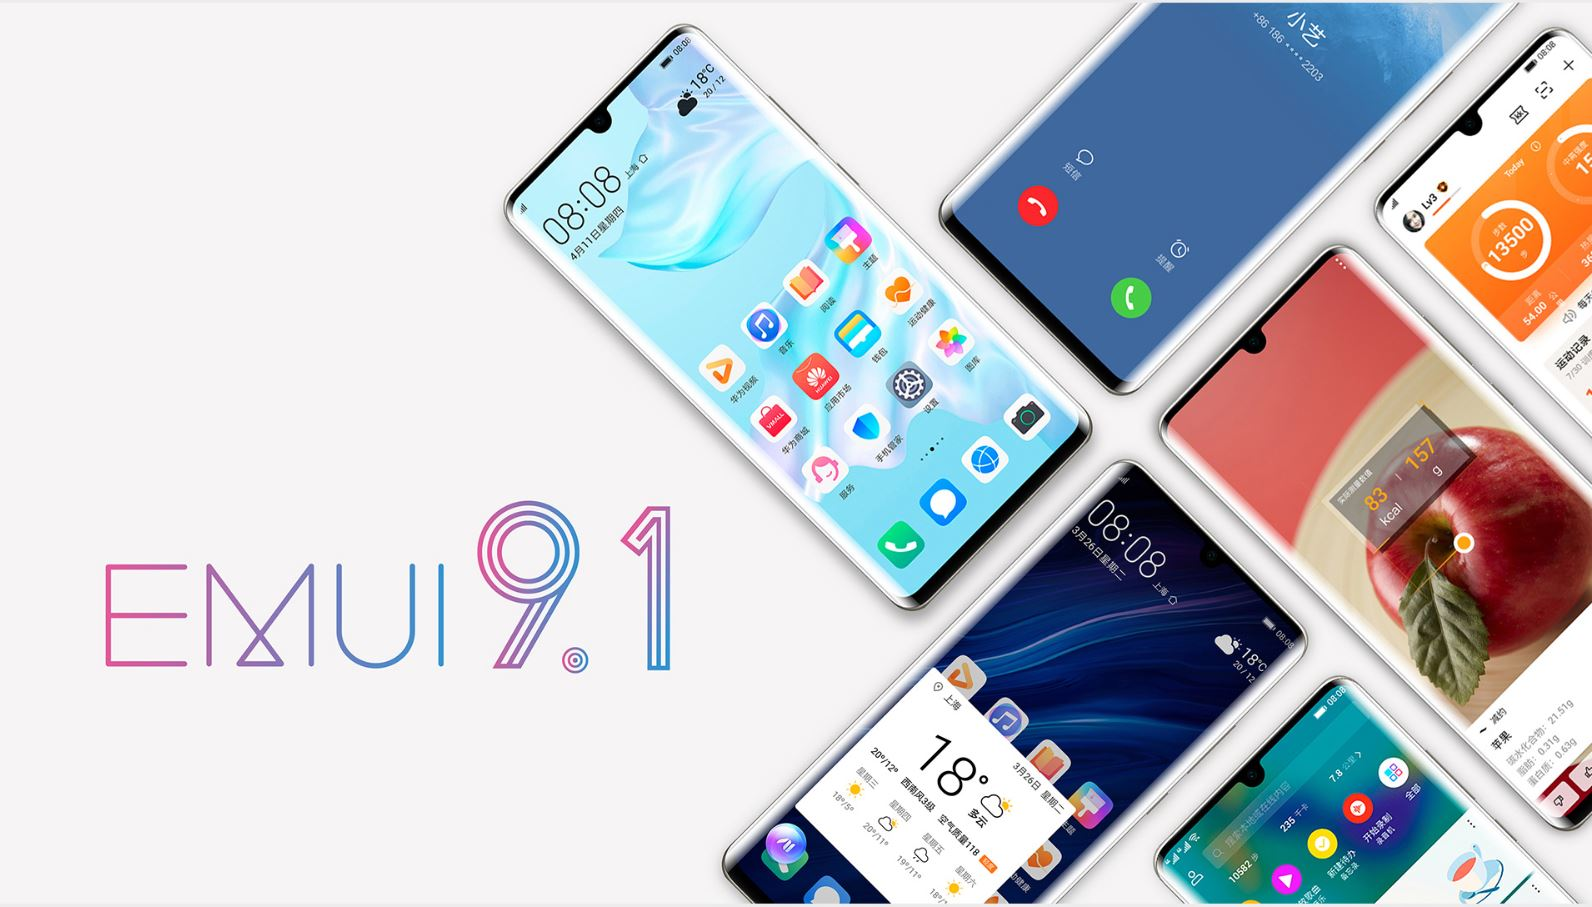 All Updates to System Apps in EMUI 9 1 - Huawei Central